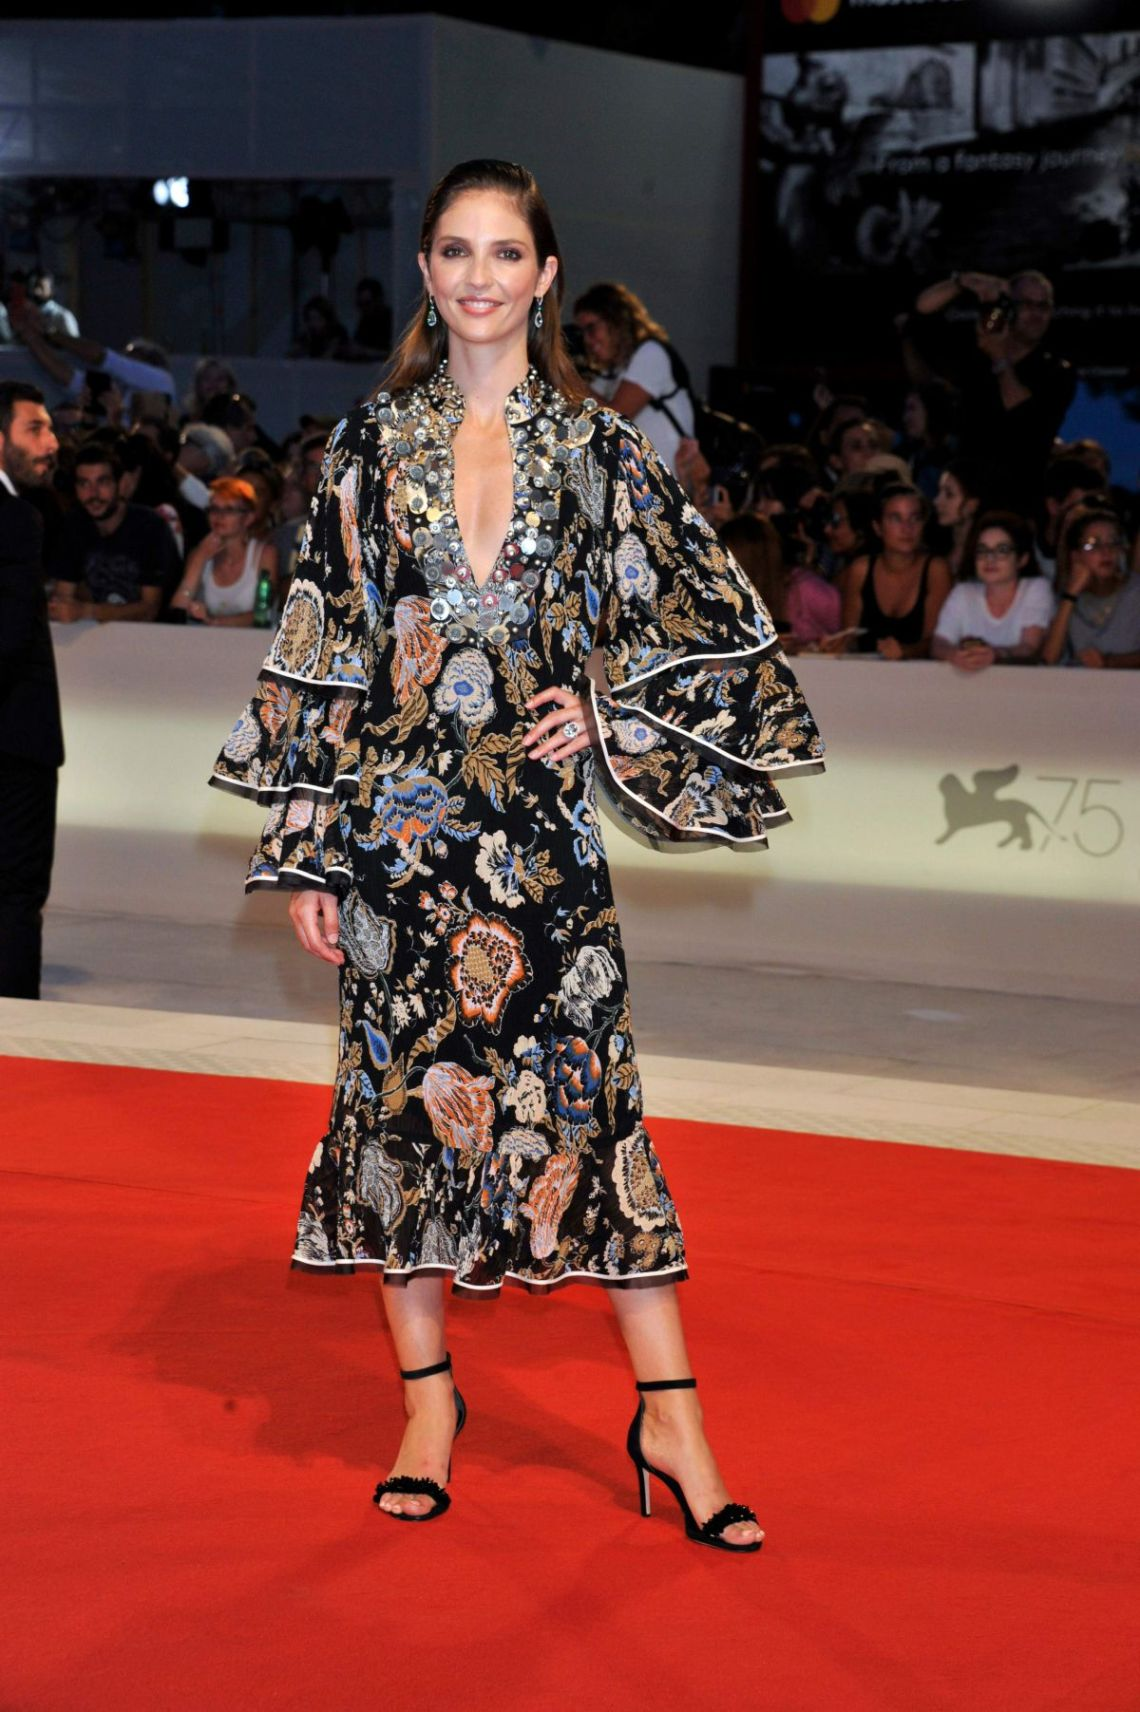 annabelle-belmondo-at-kineo-awards-75th-venice-film-festival-italy-4tory burch